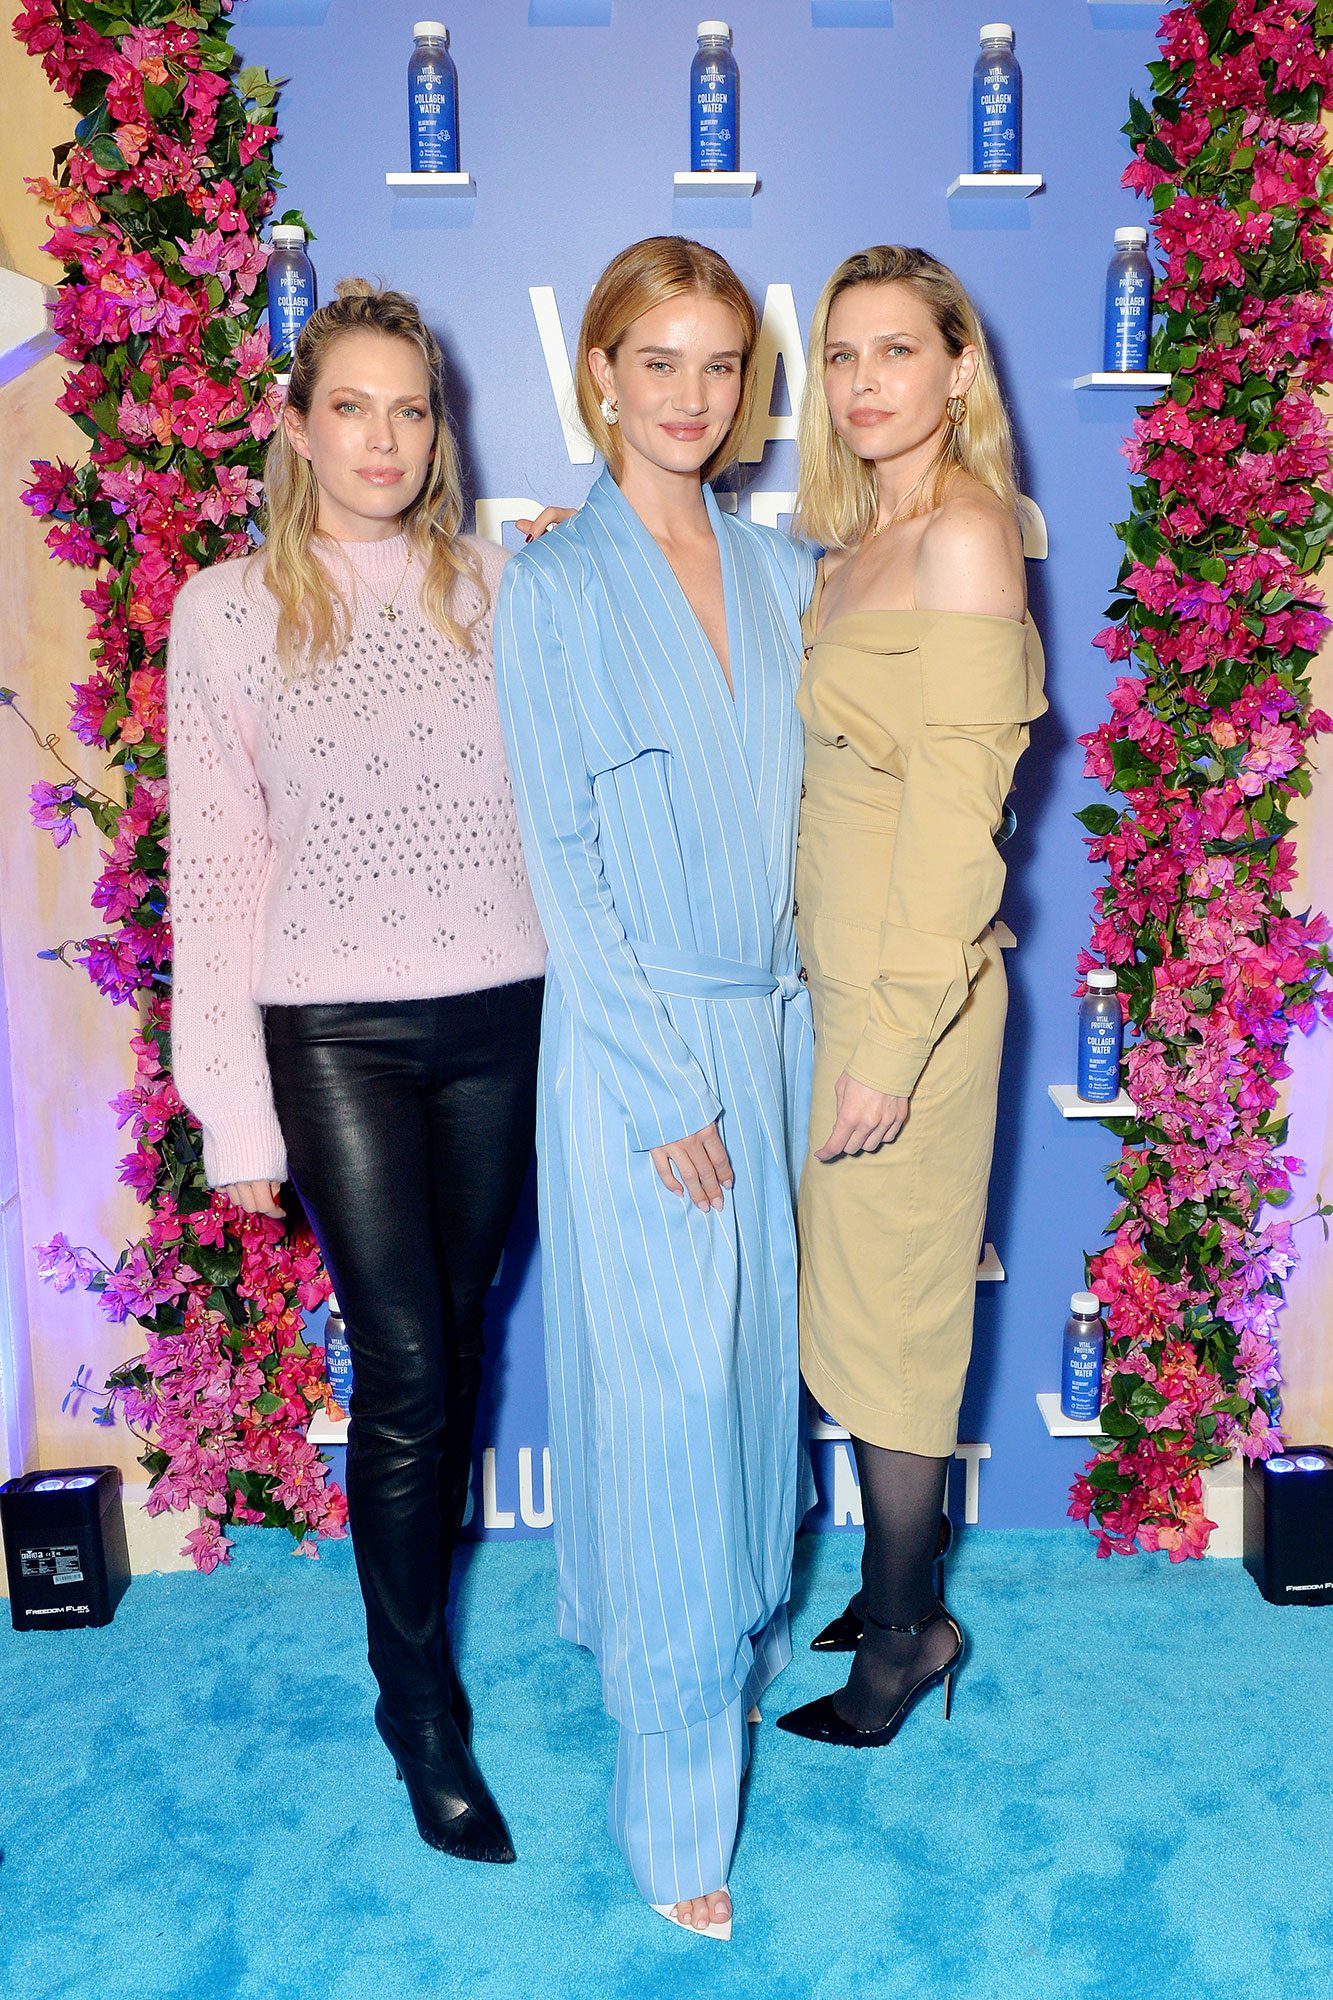 Stars Who Swear by the Celery Juice Wellness Trend: Pharrell Williams, Jenna Dewan and More - (L-R) Sara Foster, Rosie Huntington-Whiteley and Erin Foster attend Vital Proteins Collagen Water Product Launch Event on March 06, 2019 in Irvine, California.